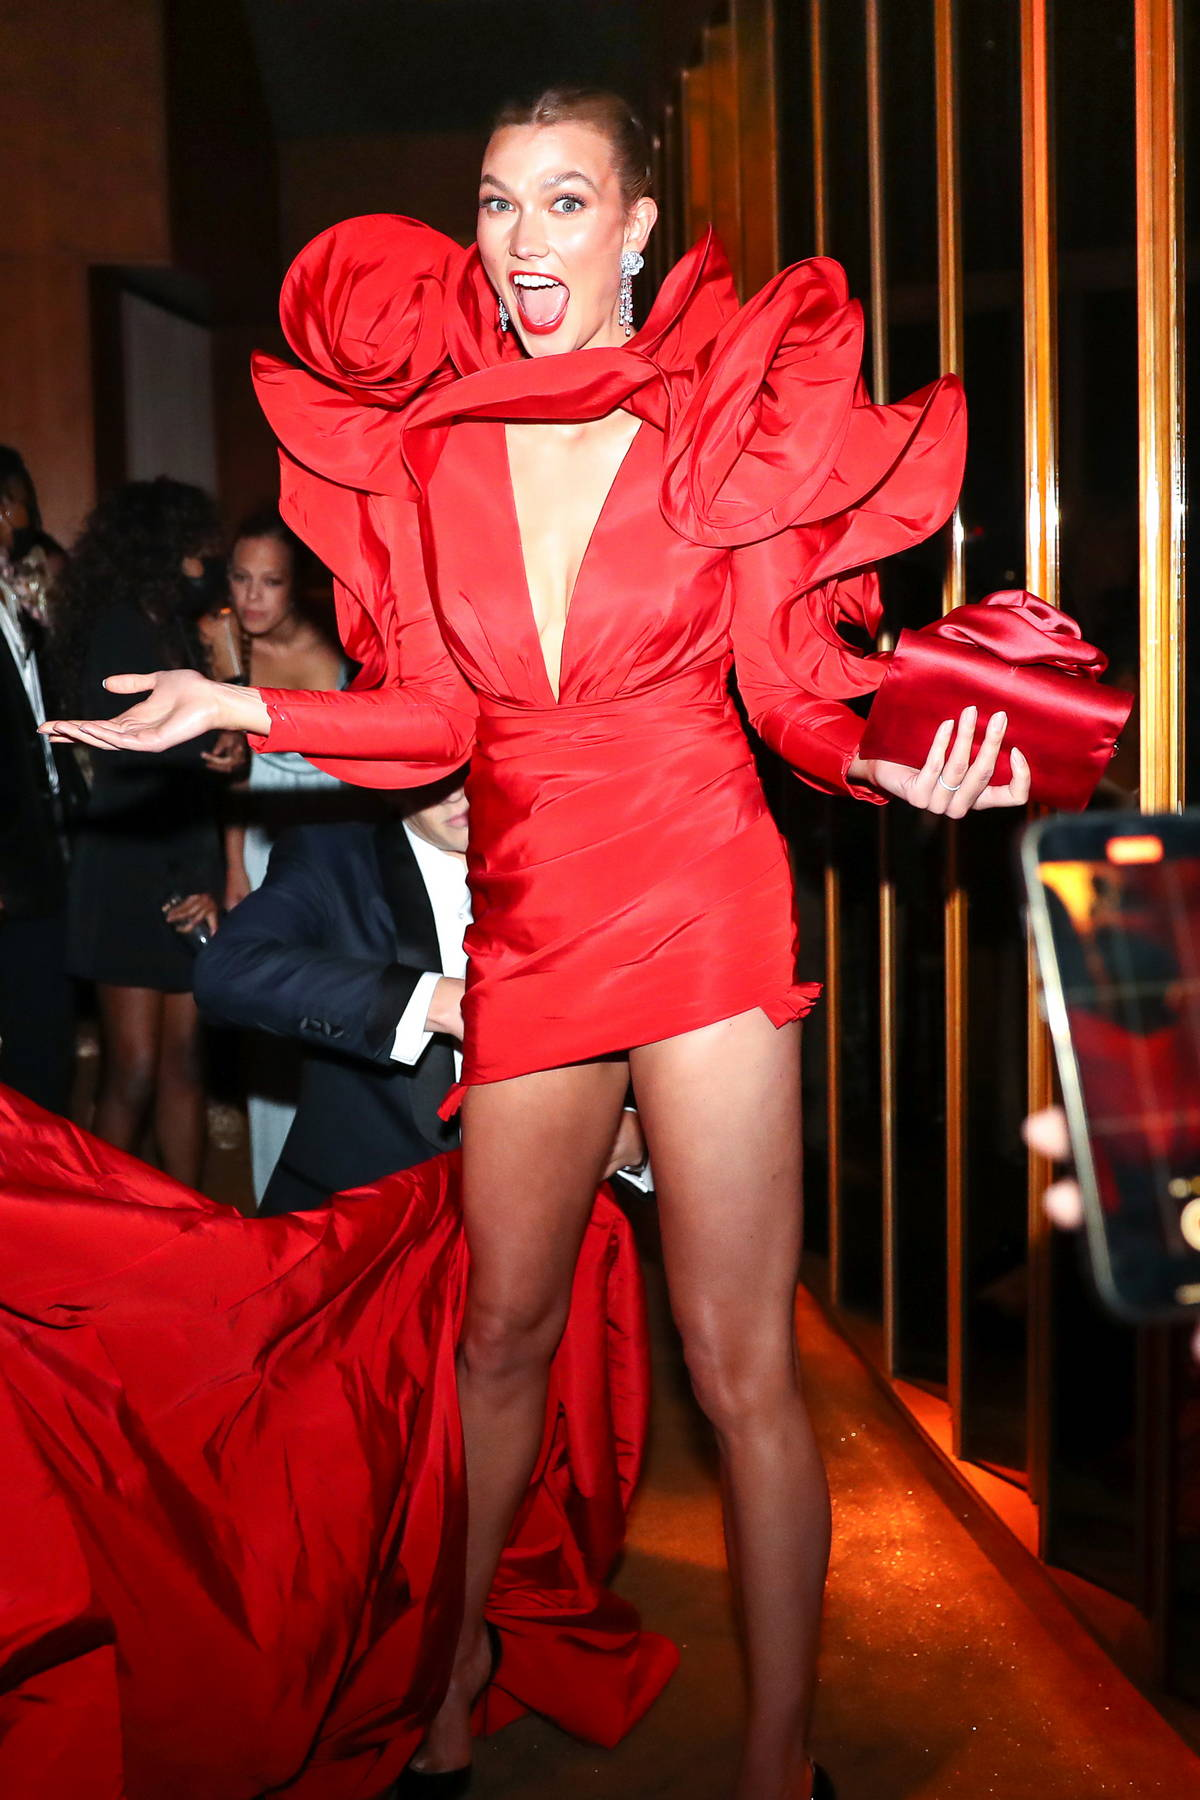 Karlie Kloss attends the Boom Boom Met Gala after-party in New York City